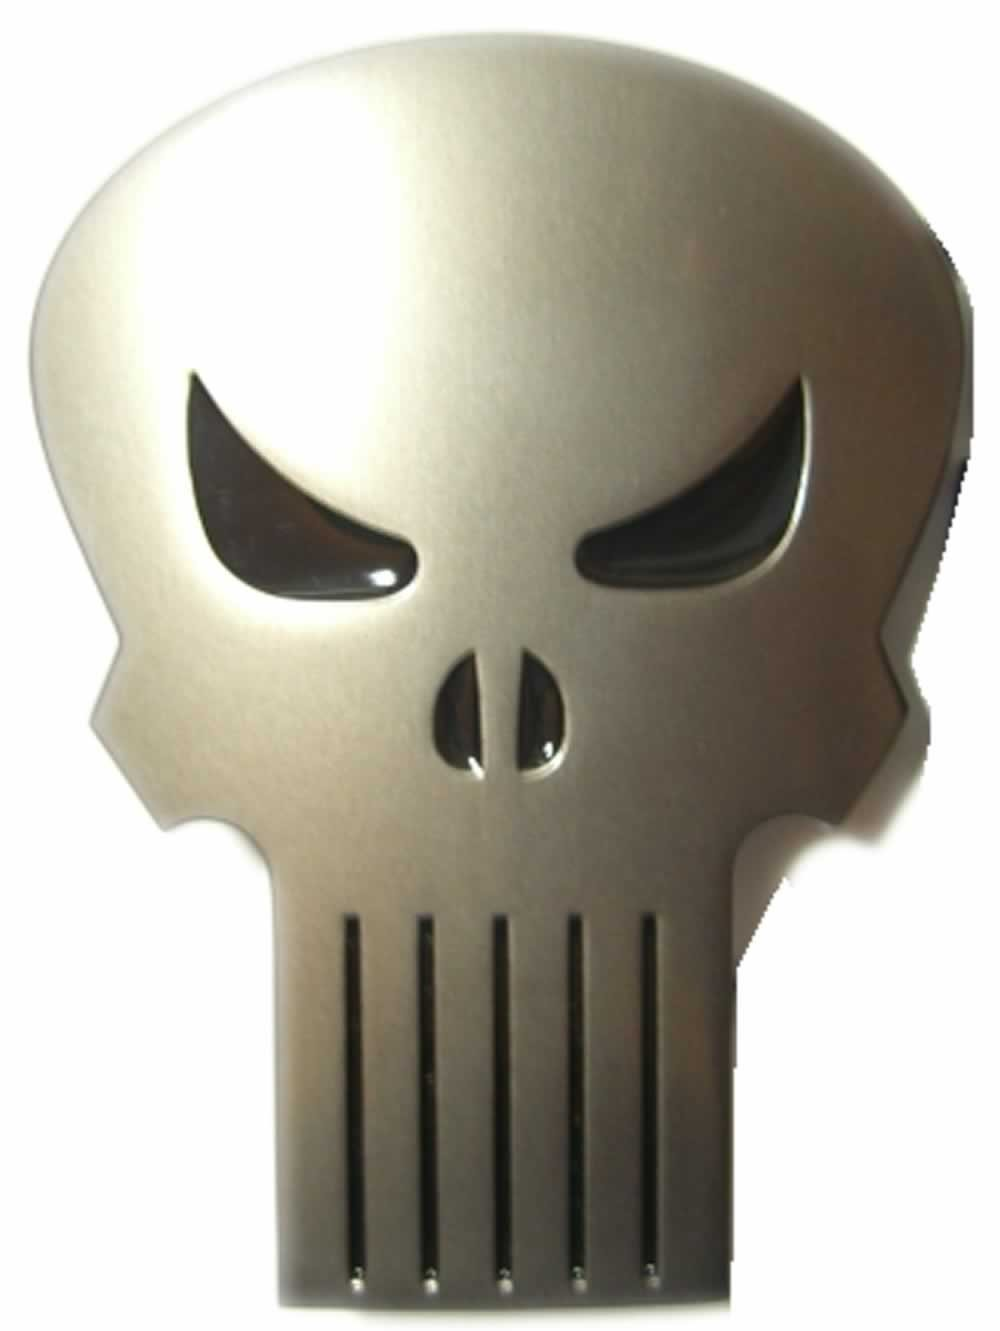 The Punisher Belt Buckle With Display Stand Officially